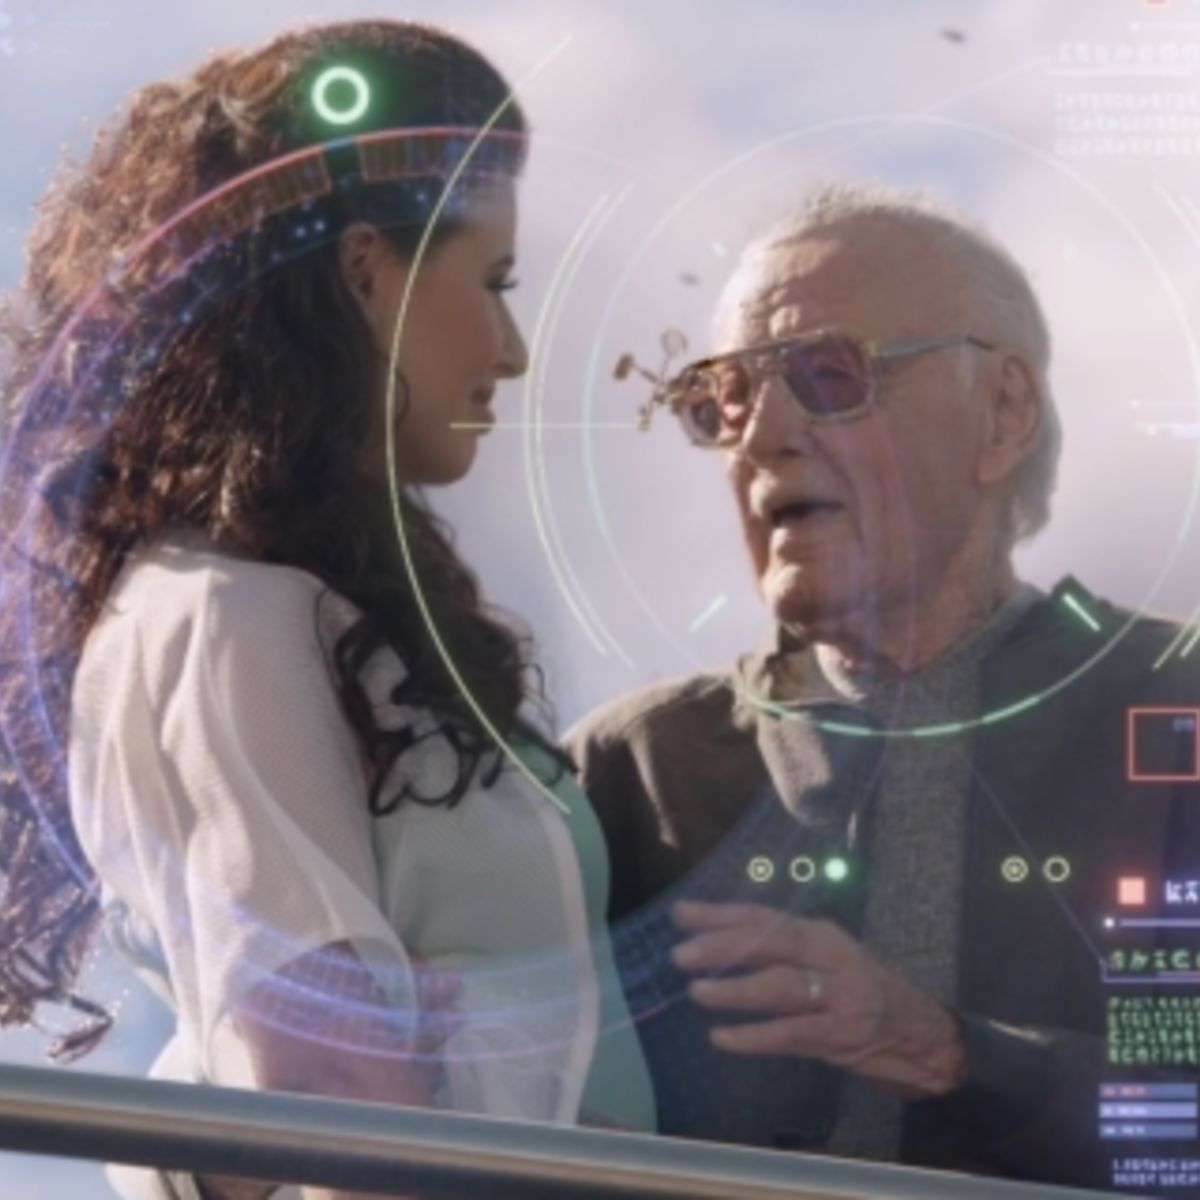 Guardians-of-the-Galaxy-Stan-Lee-cameo.jpg